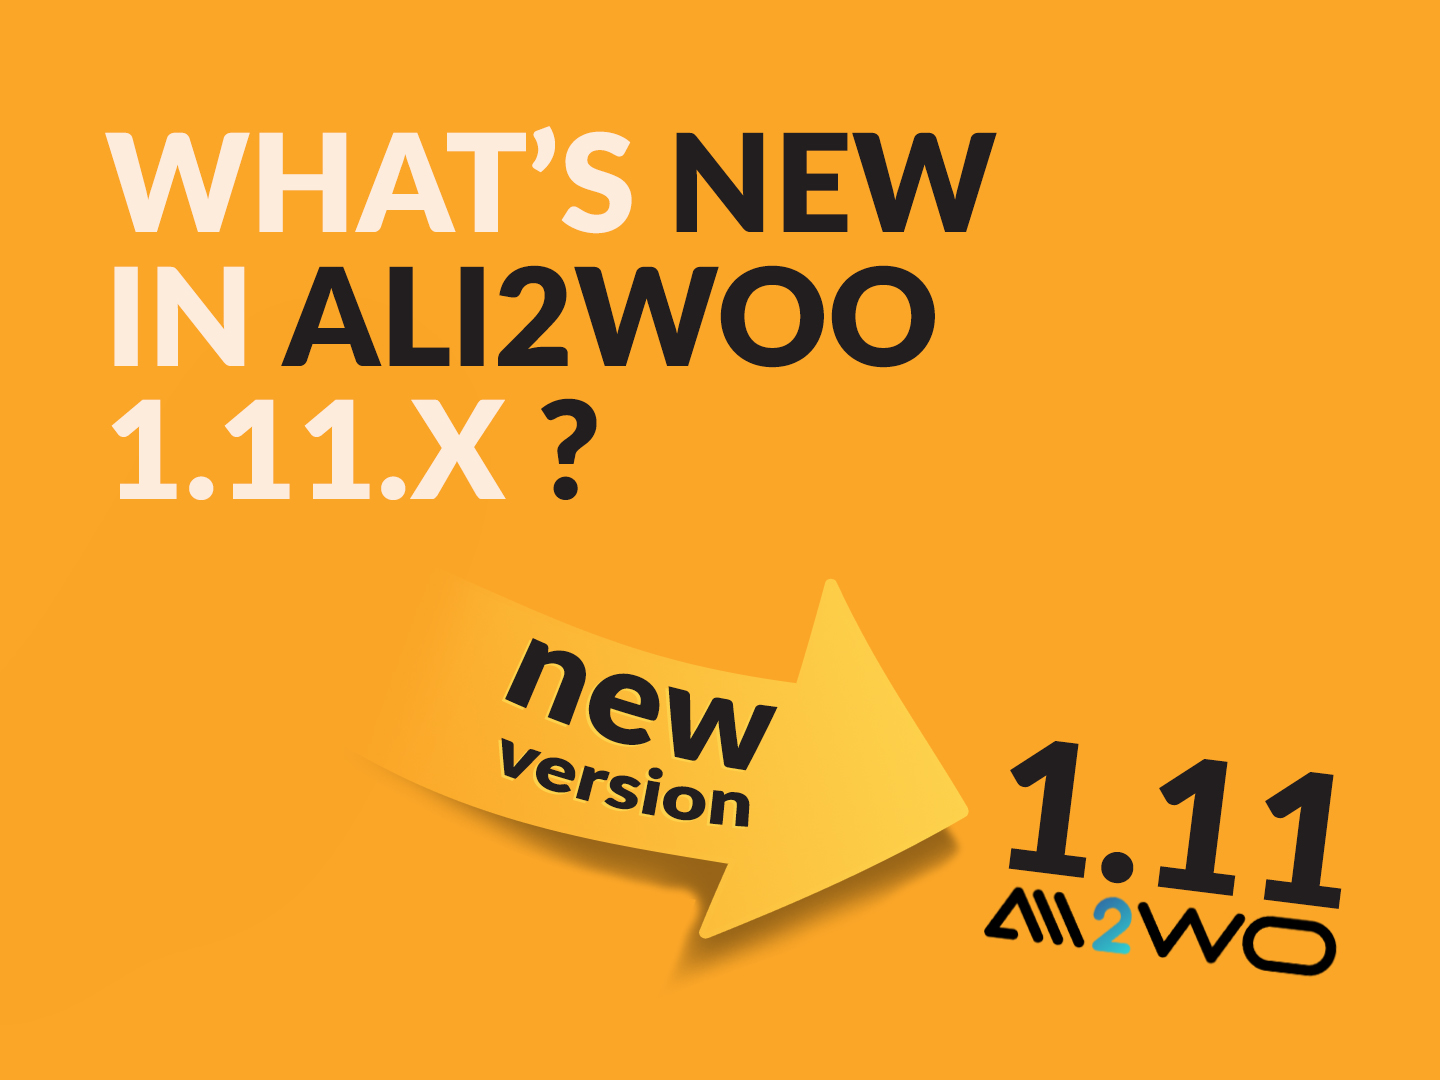 WHAT'S-NEW-IN-ALI2WOO